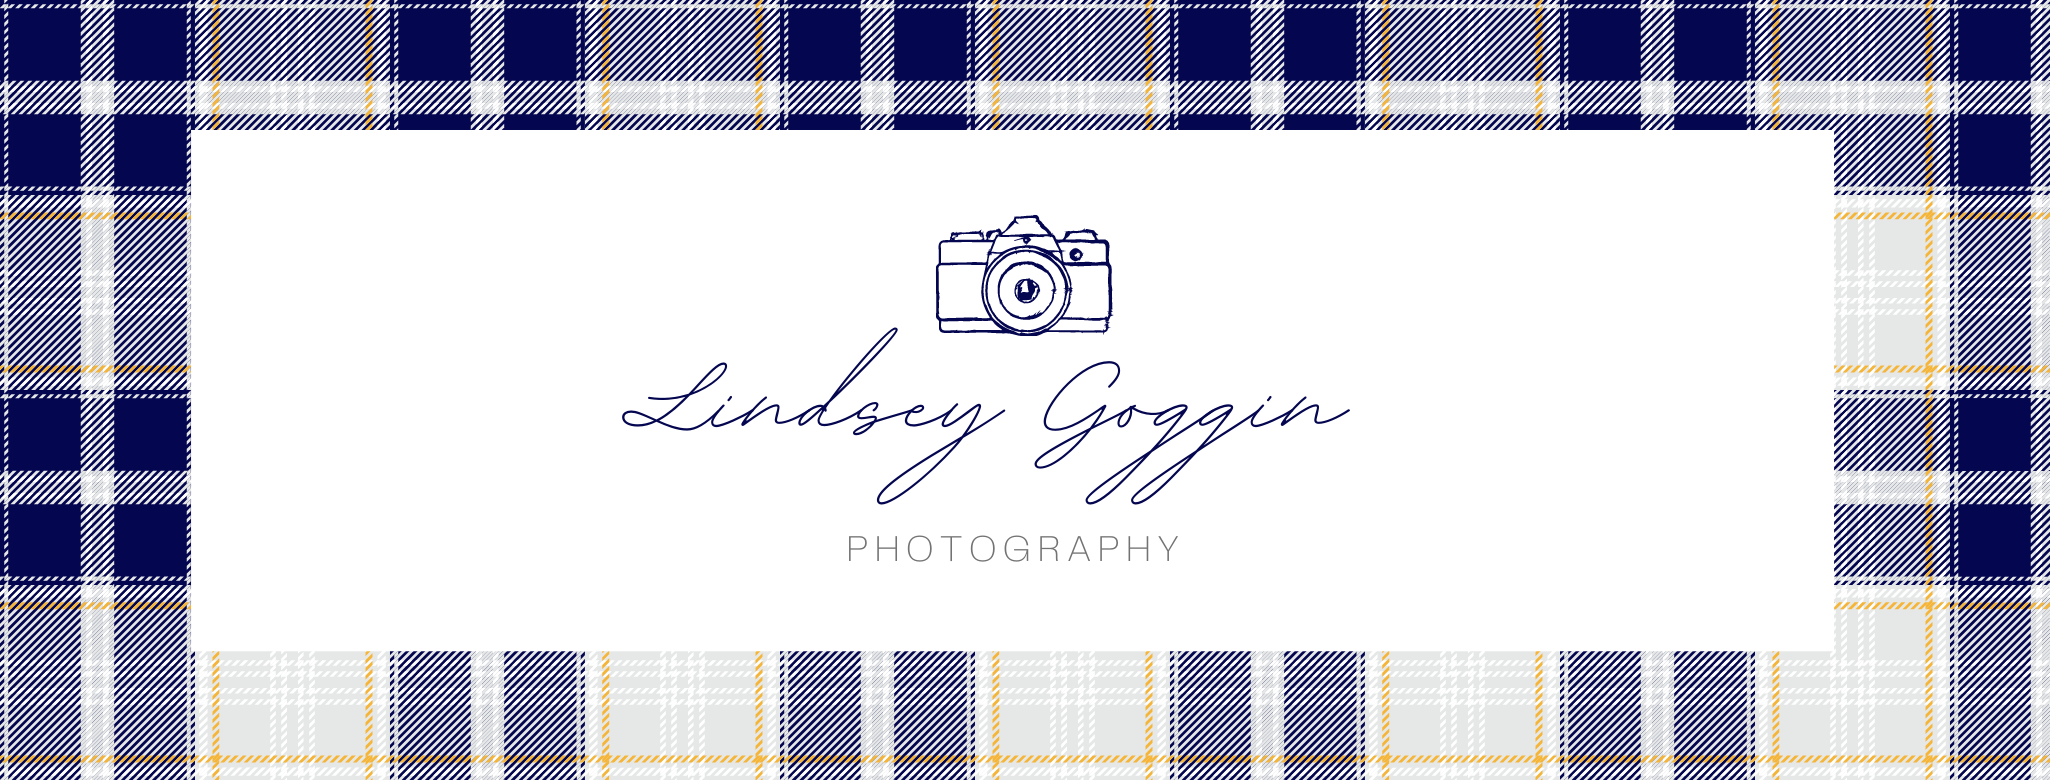 Lindsey Goggin Photography